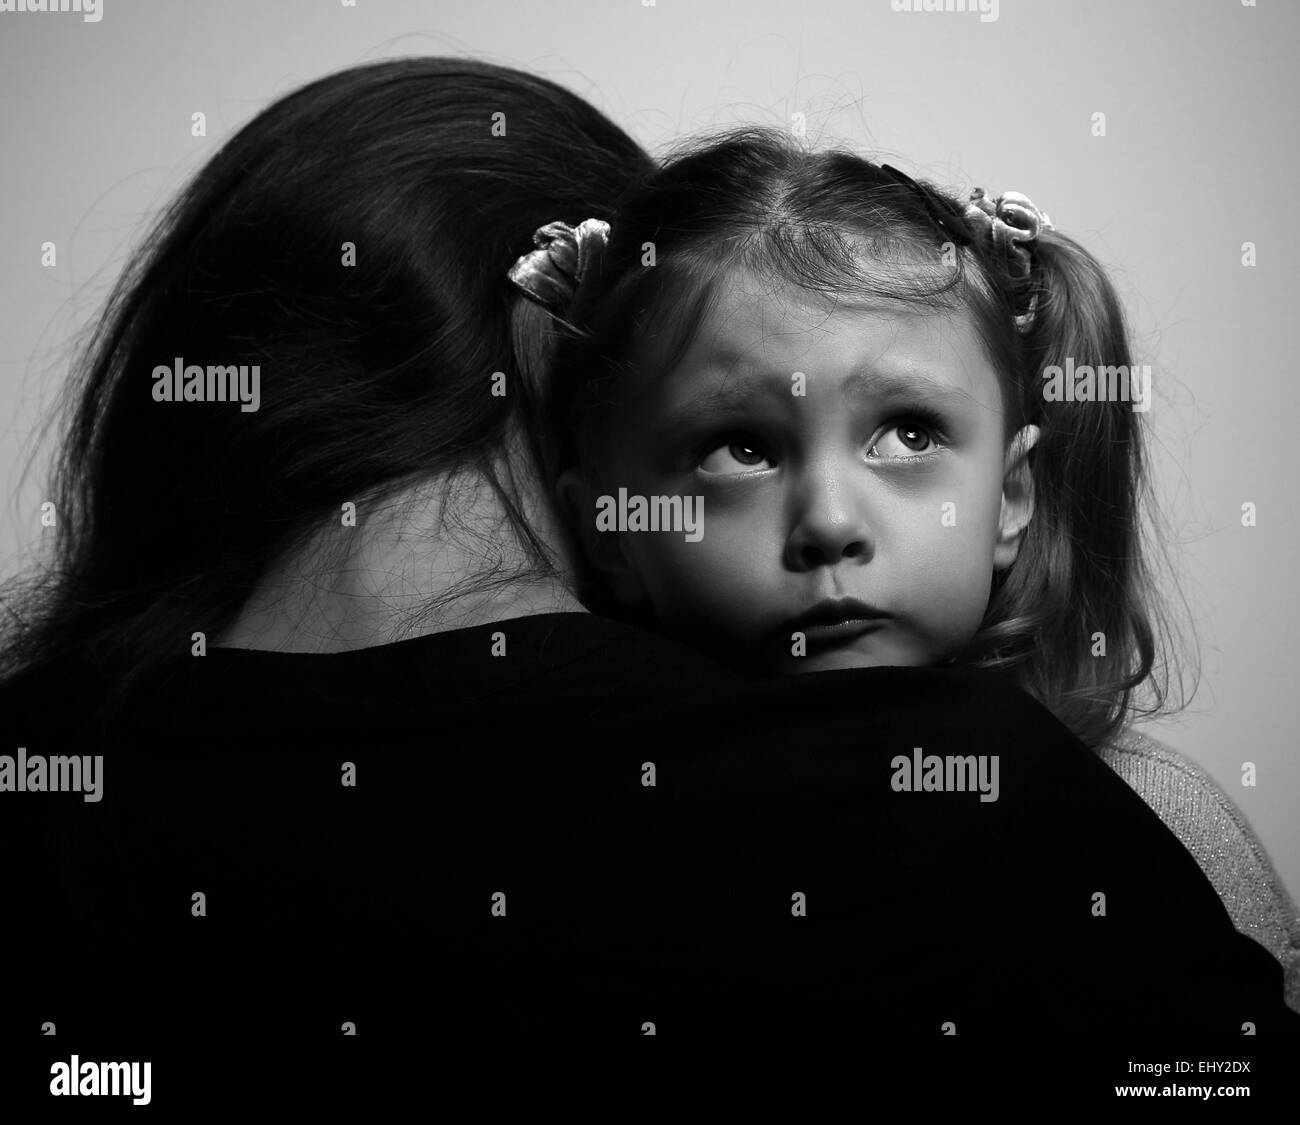 Close between loving supporting mother and sad daughter looking with hope on dark background. Black and white portrait - Stock Image